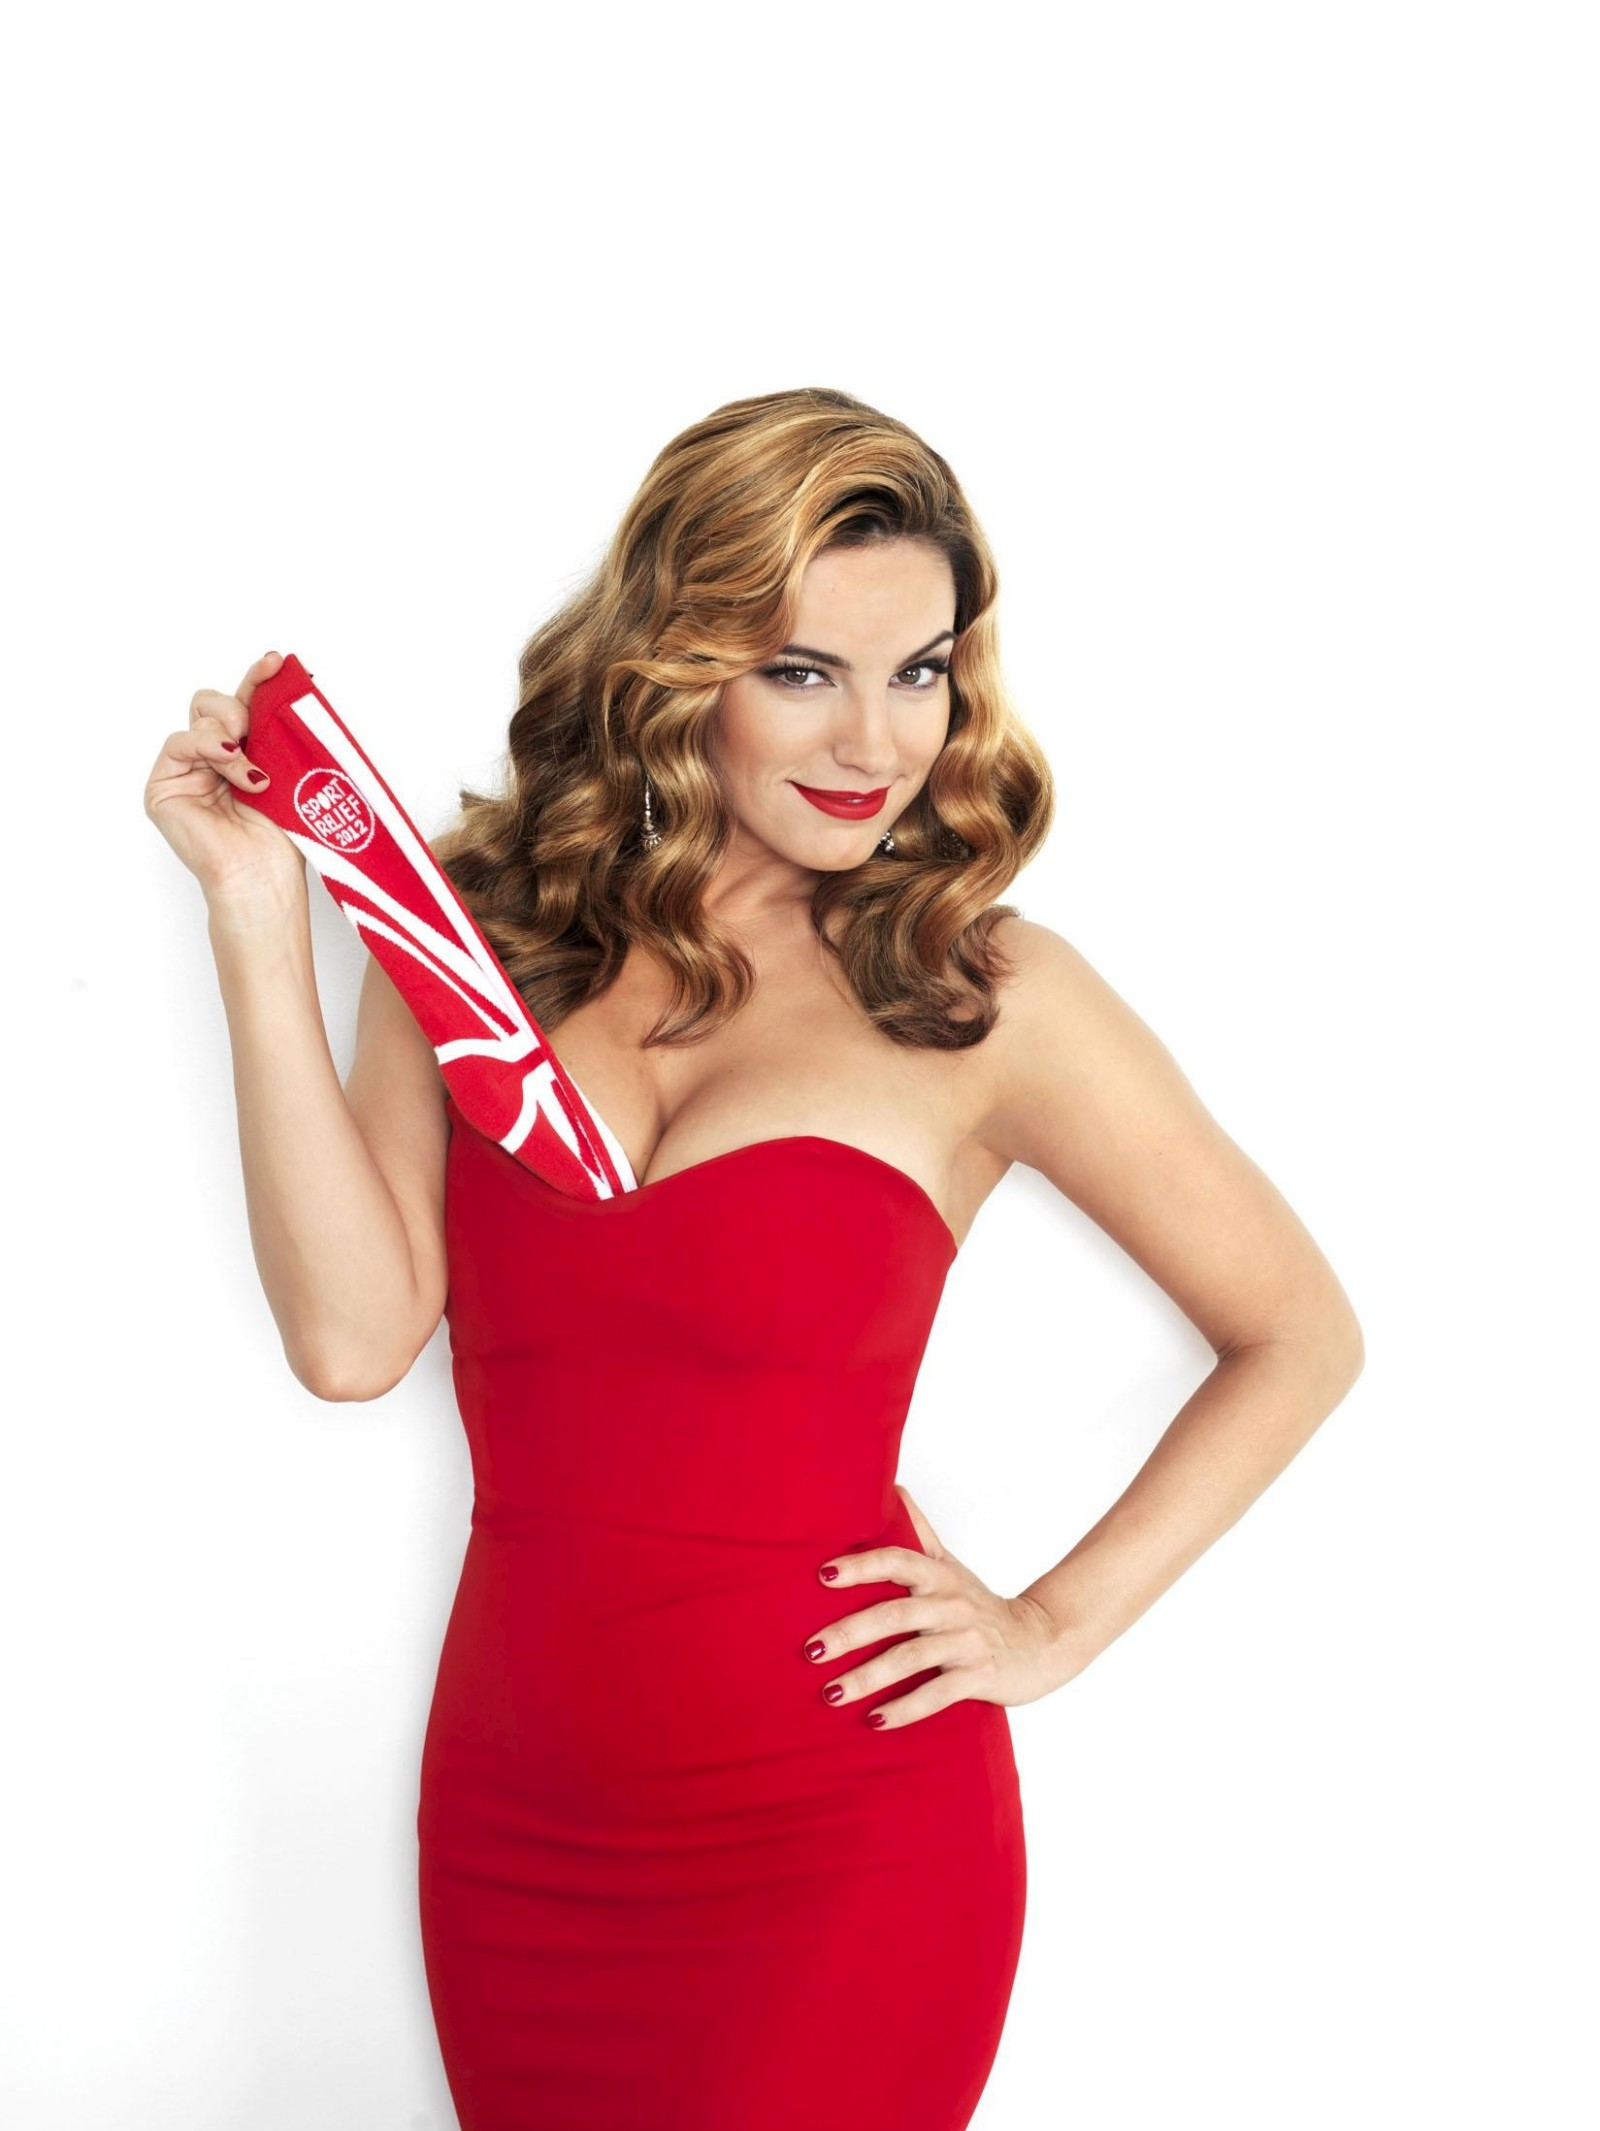 Kelly Brook 2012 : Kelly Brook Pulling socks from cleavage for Sports Relief 2012 charity photoshoot-03